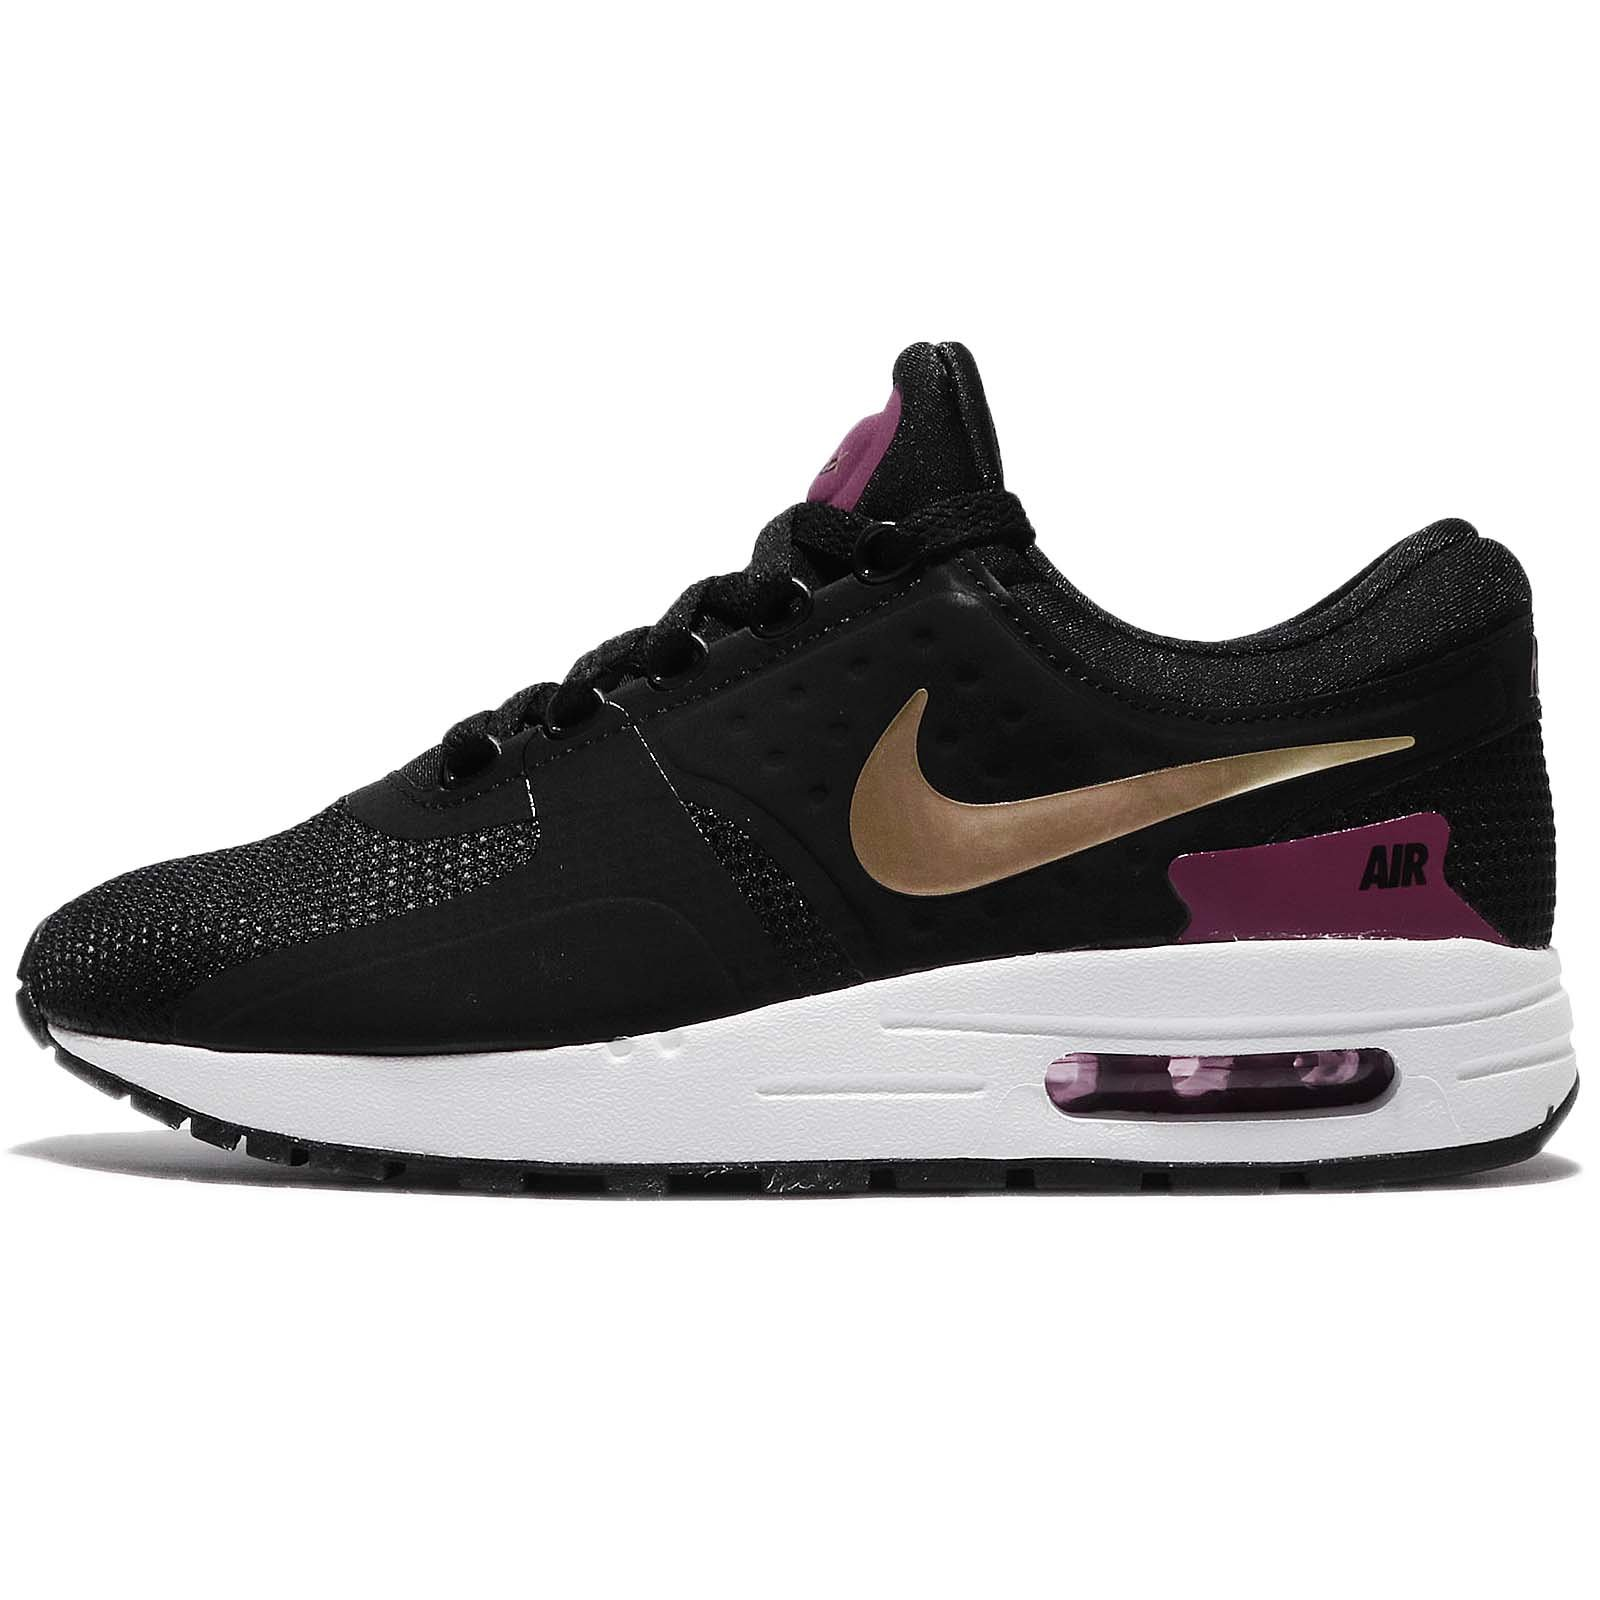 outlet store 9b173 6b3bc Galleon - NIKE Kids Air Max Zero Essential GS, Black Metallic Gold-White, Youth  Size 5